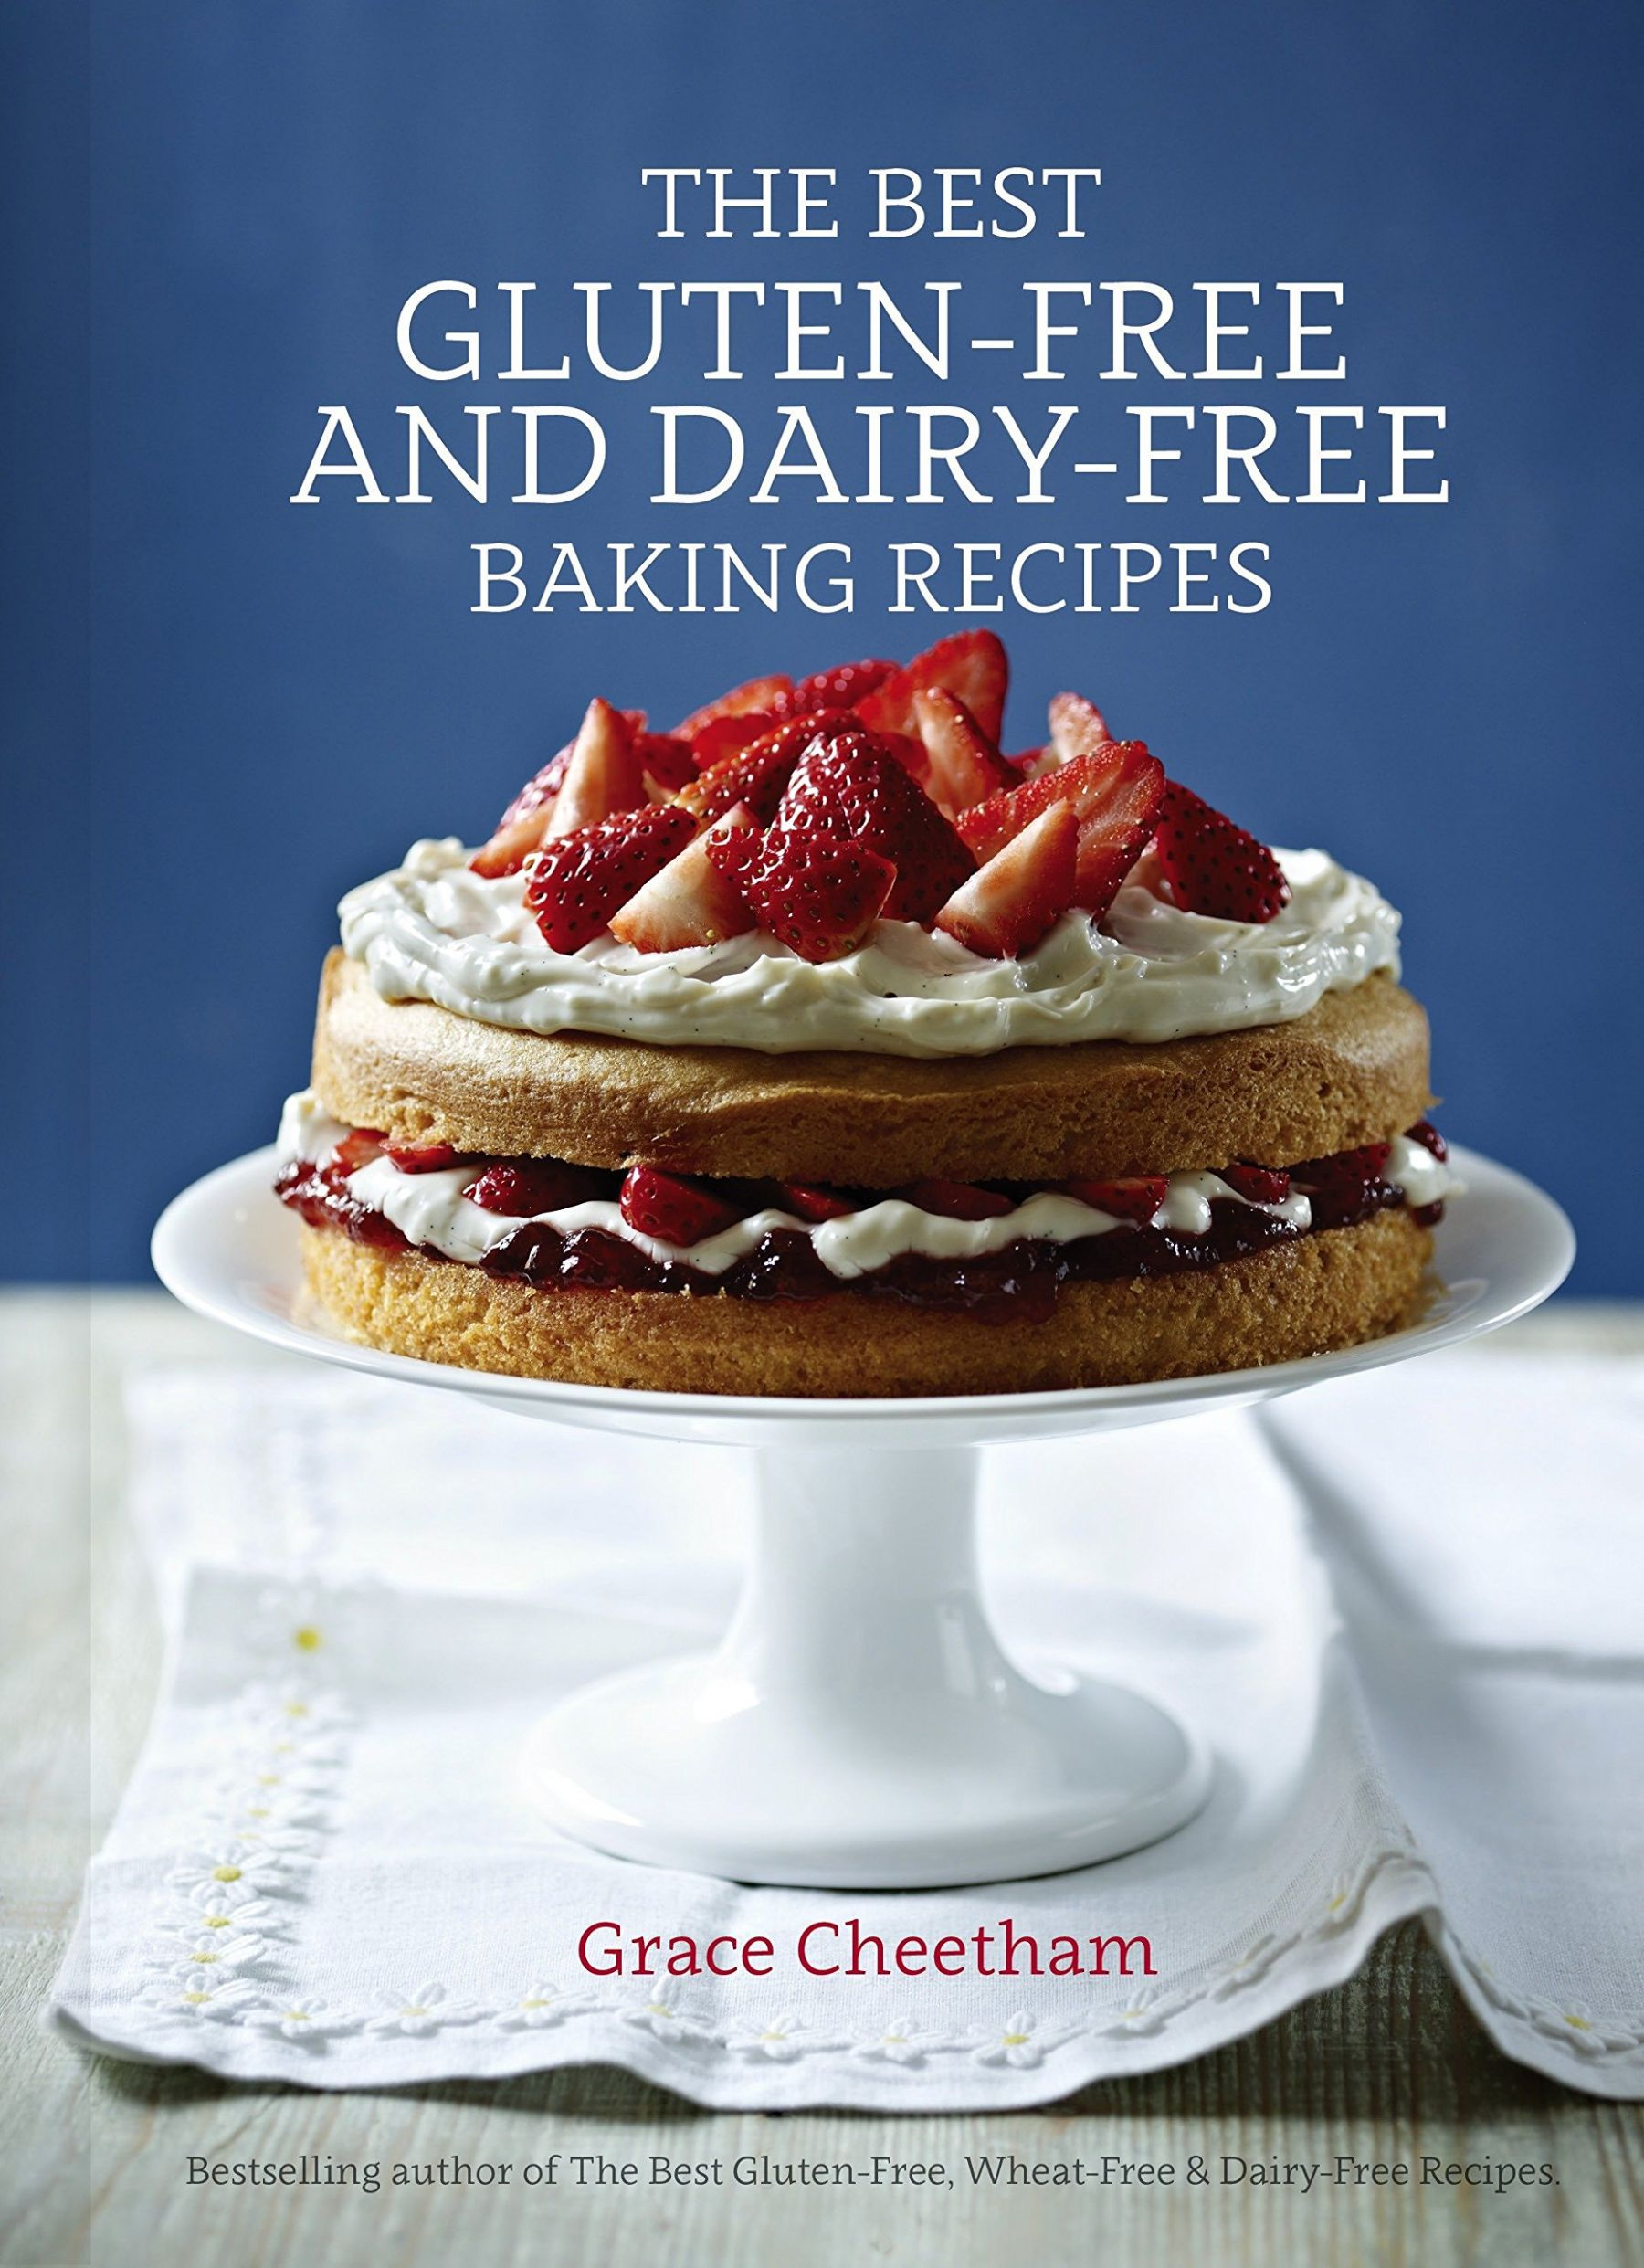 The Best Gluten-Free and Dairy-Free Baking Recipes: Cheetham ..